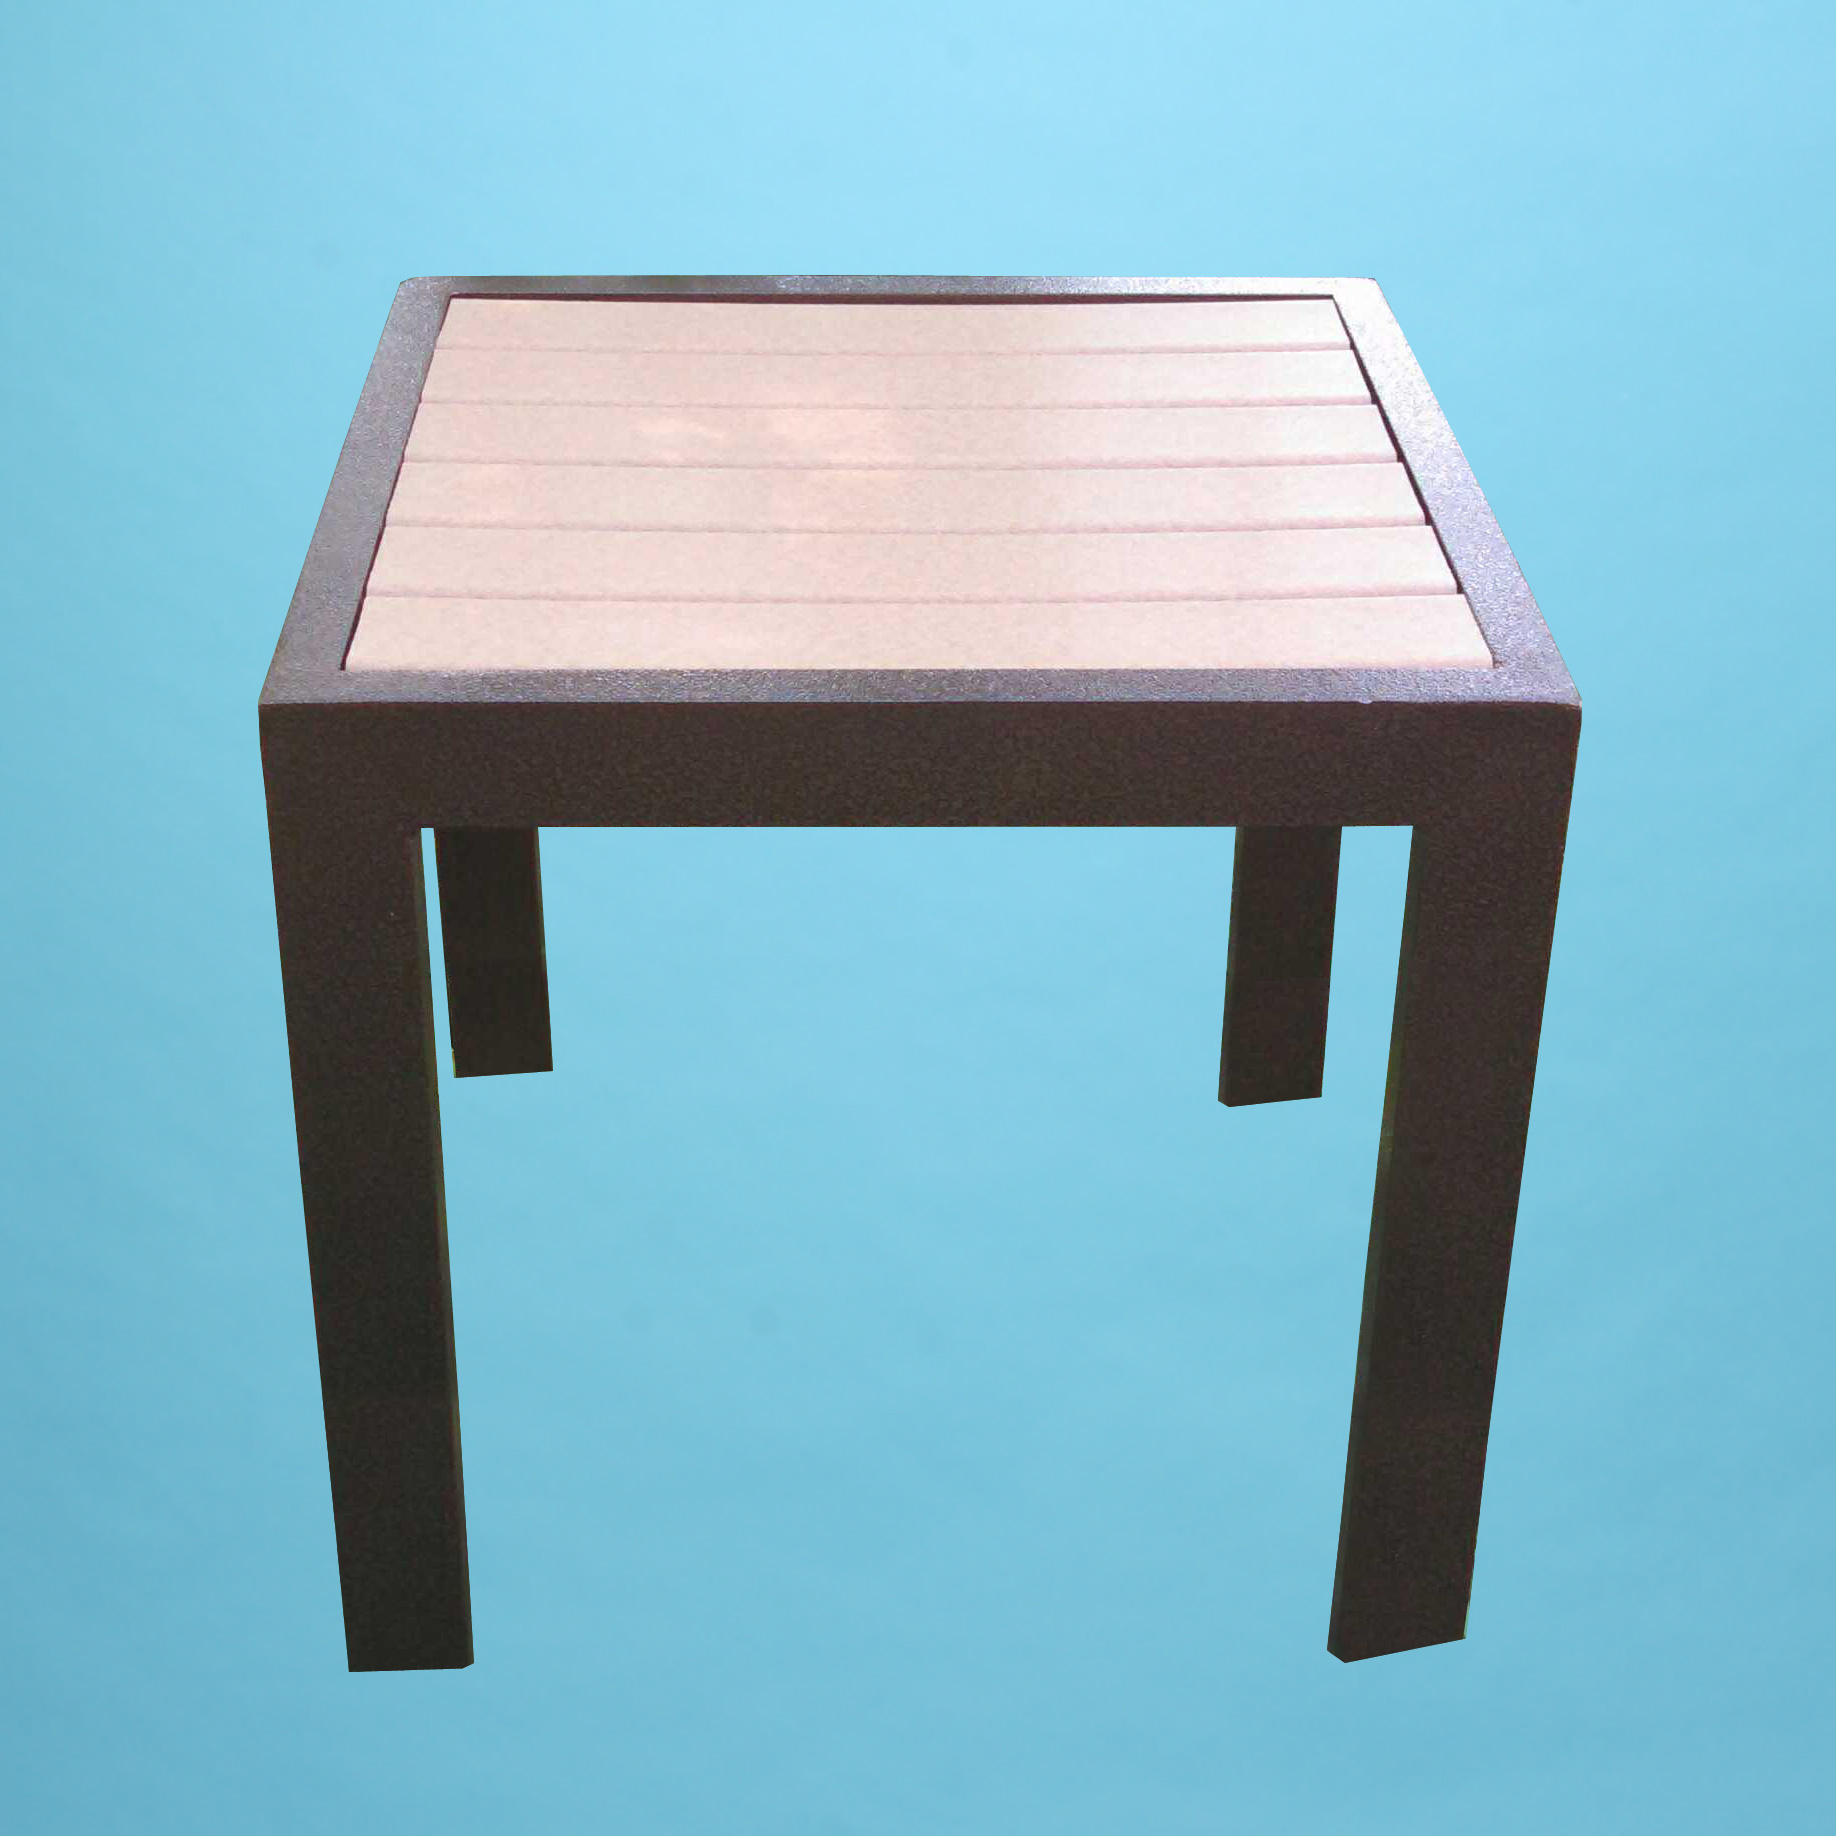 Eco Wood 18 Quot Square Table Patio Furniture By Dr Strap